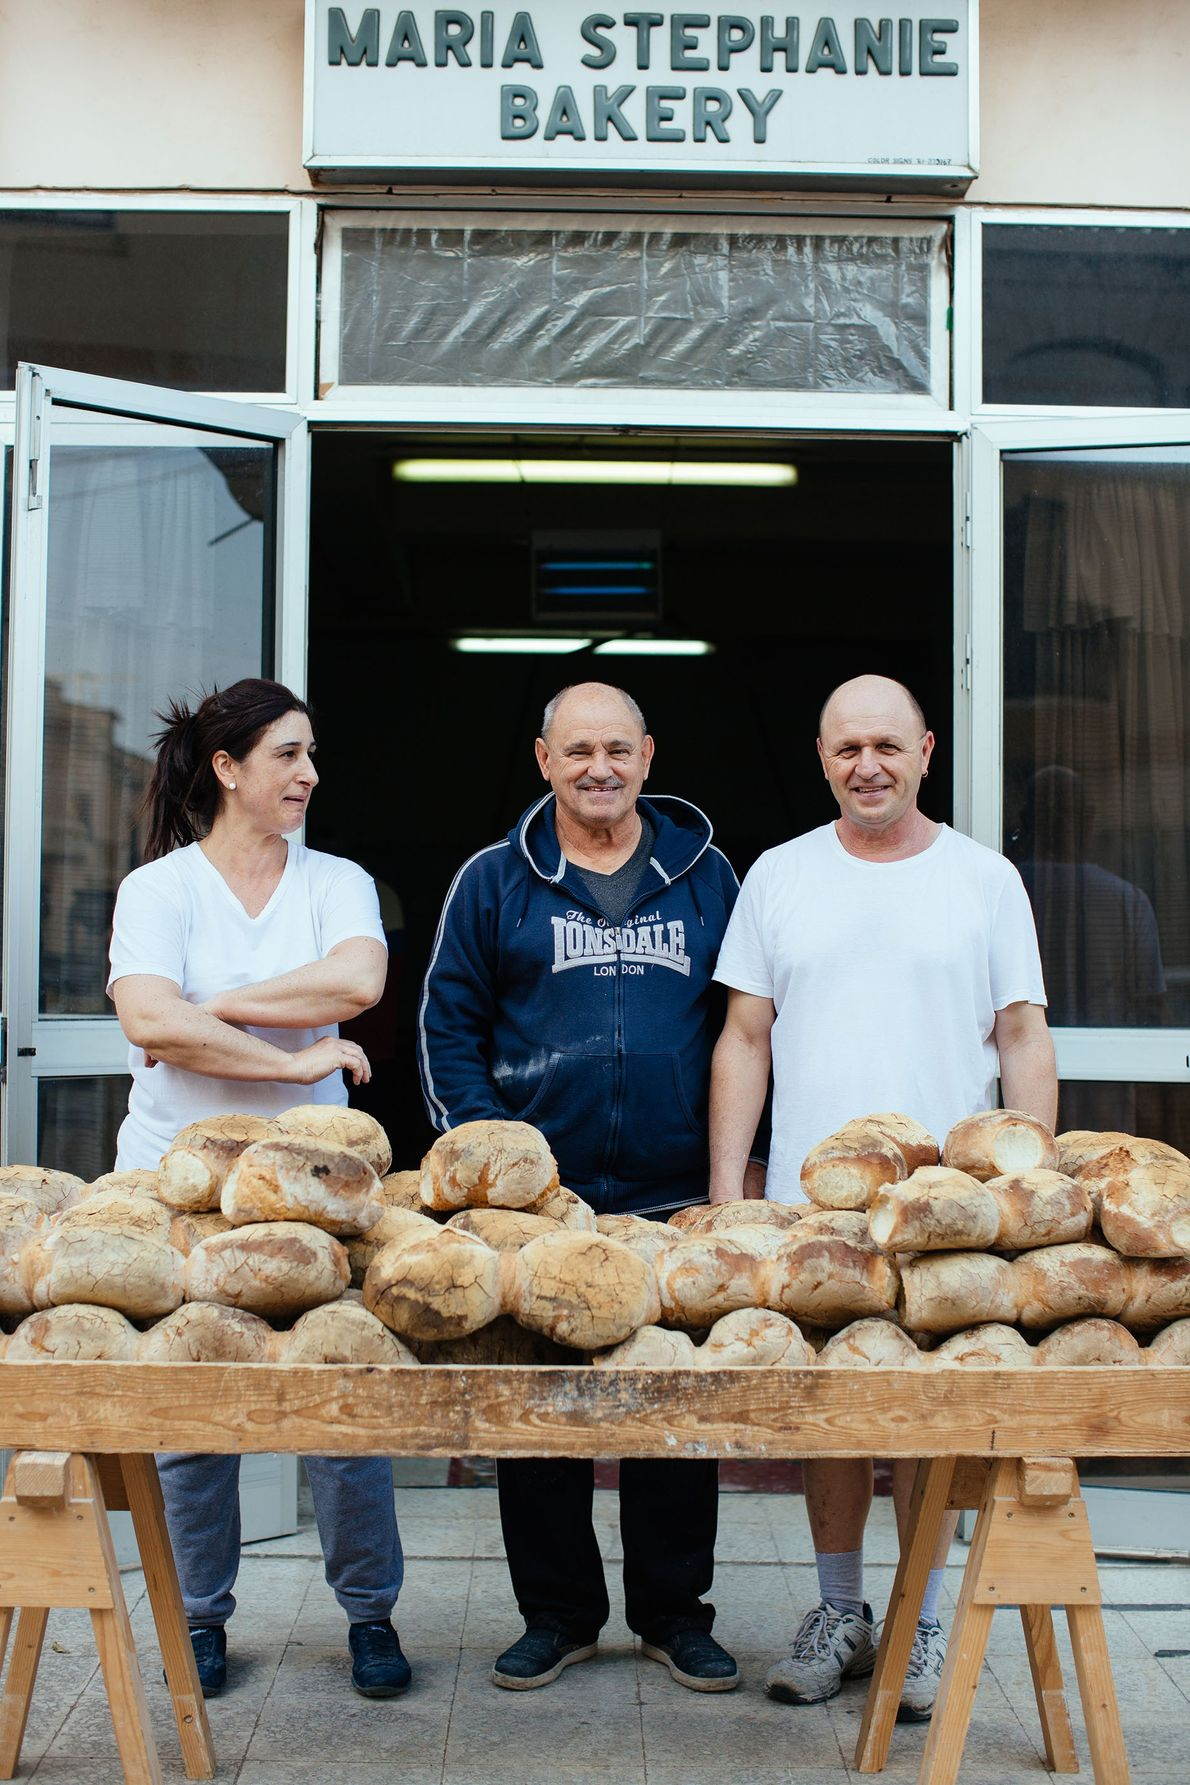 Two generations of Maria Stephanie Bakery owners